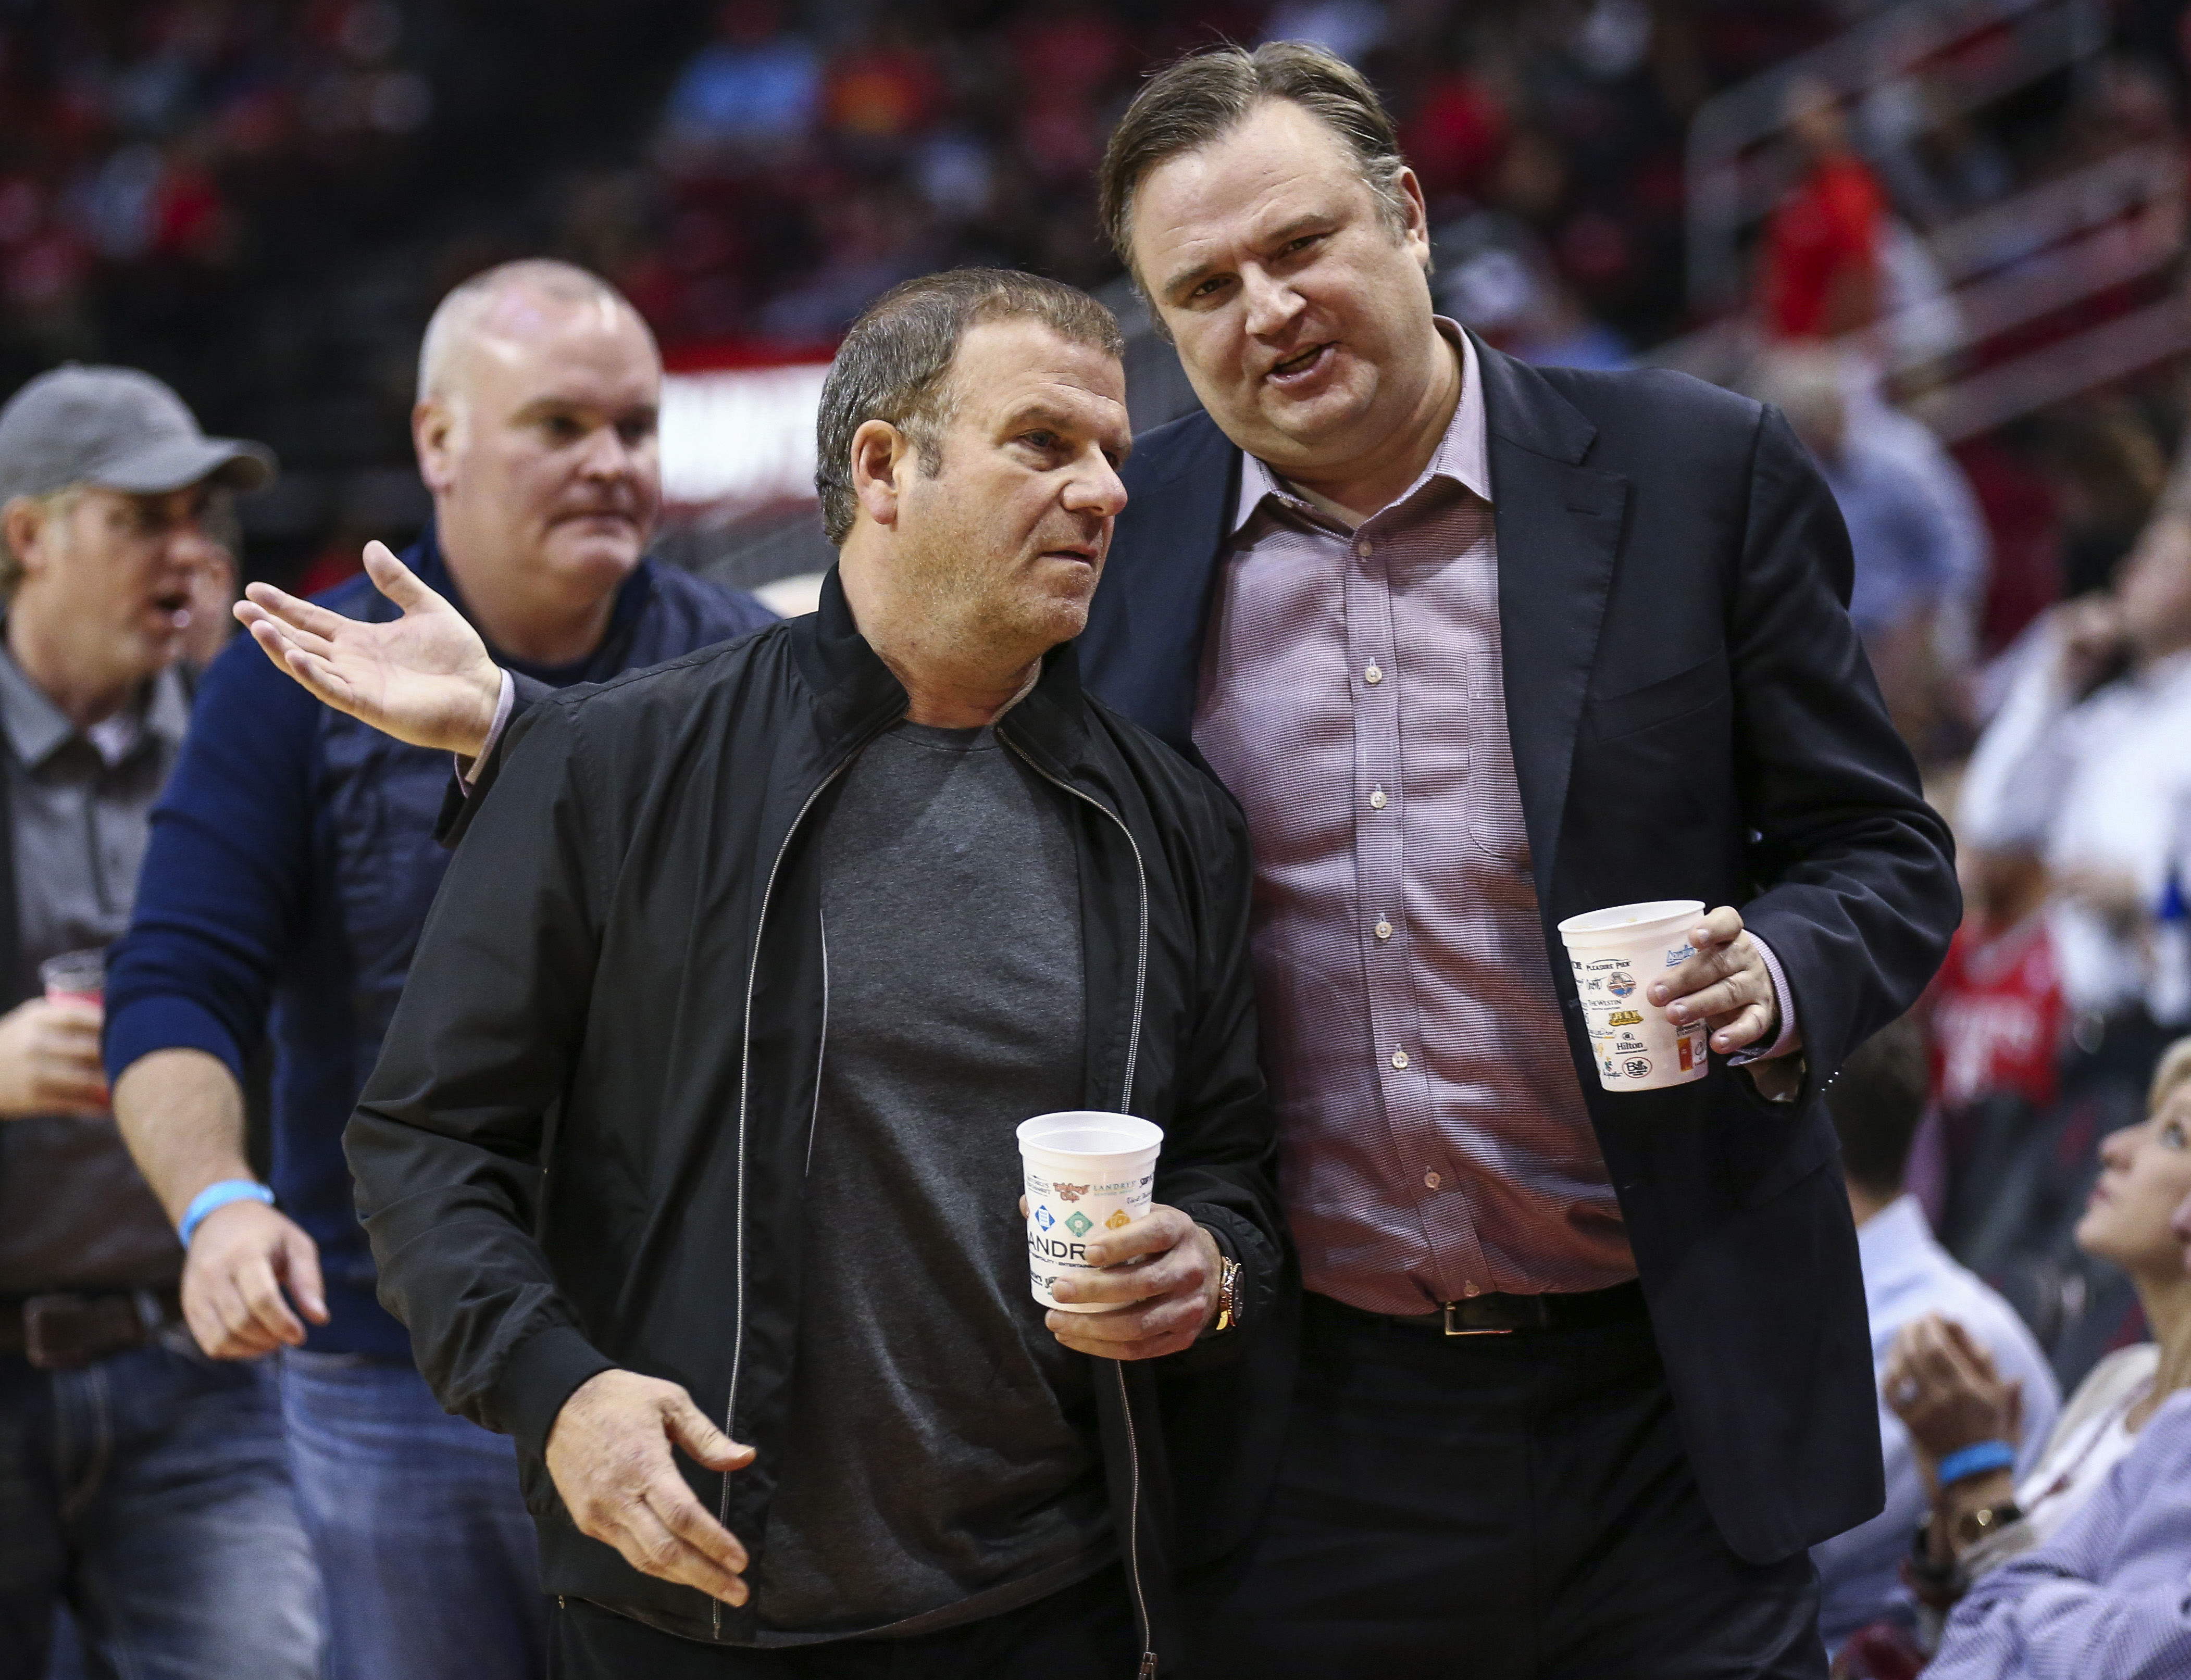 Daryl Morey has high expectations for Rockets, says team 'should win' NBA title